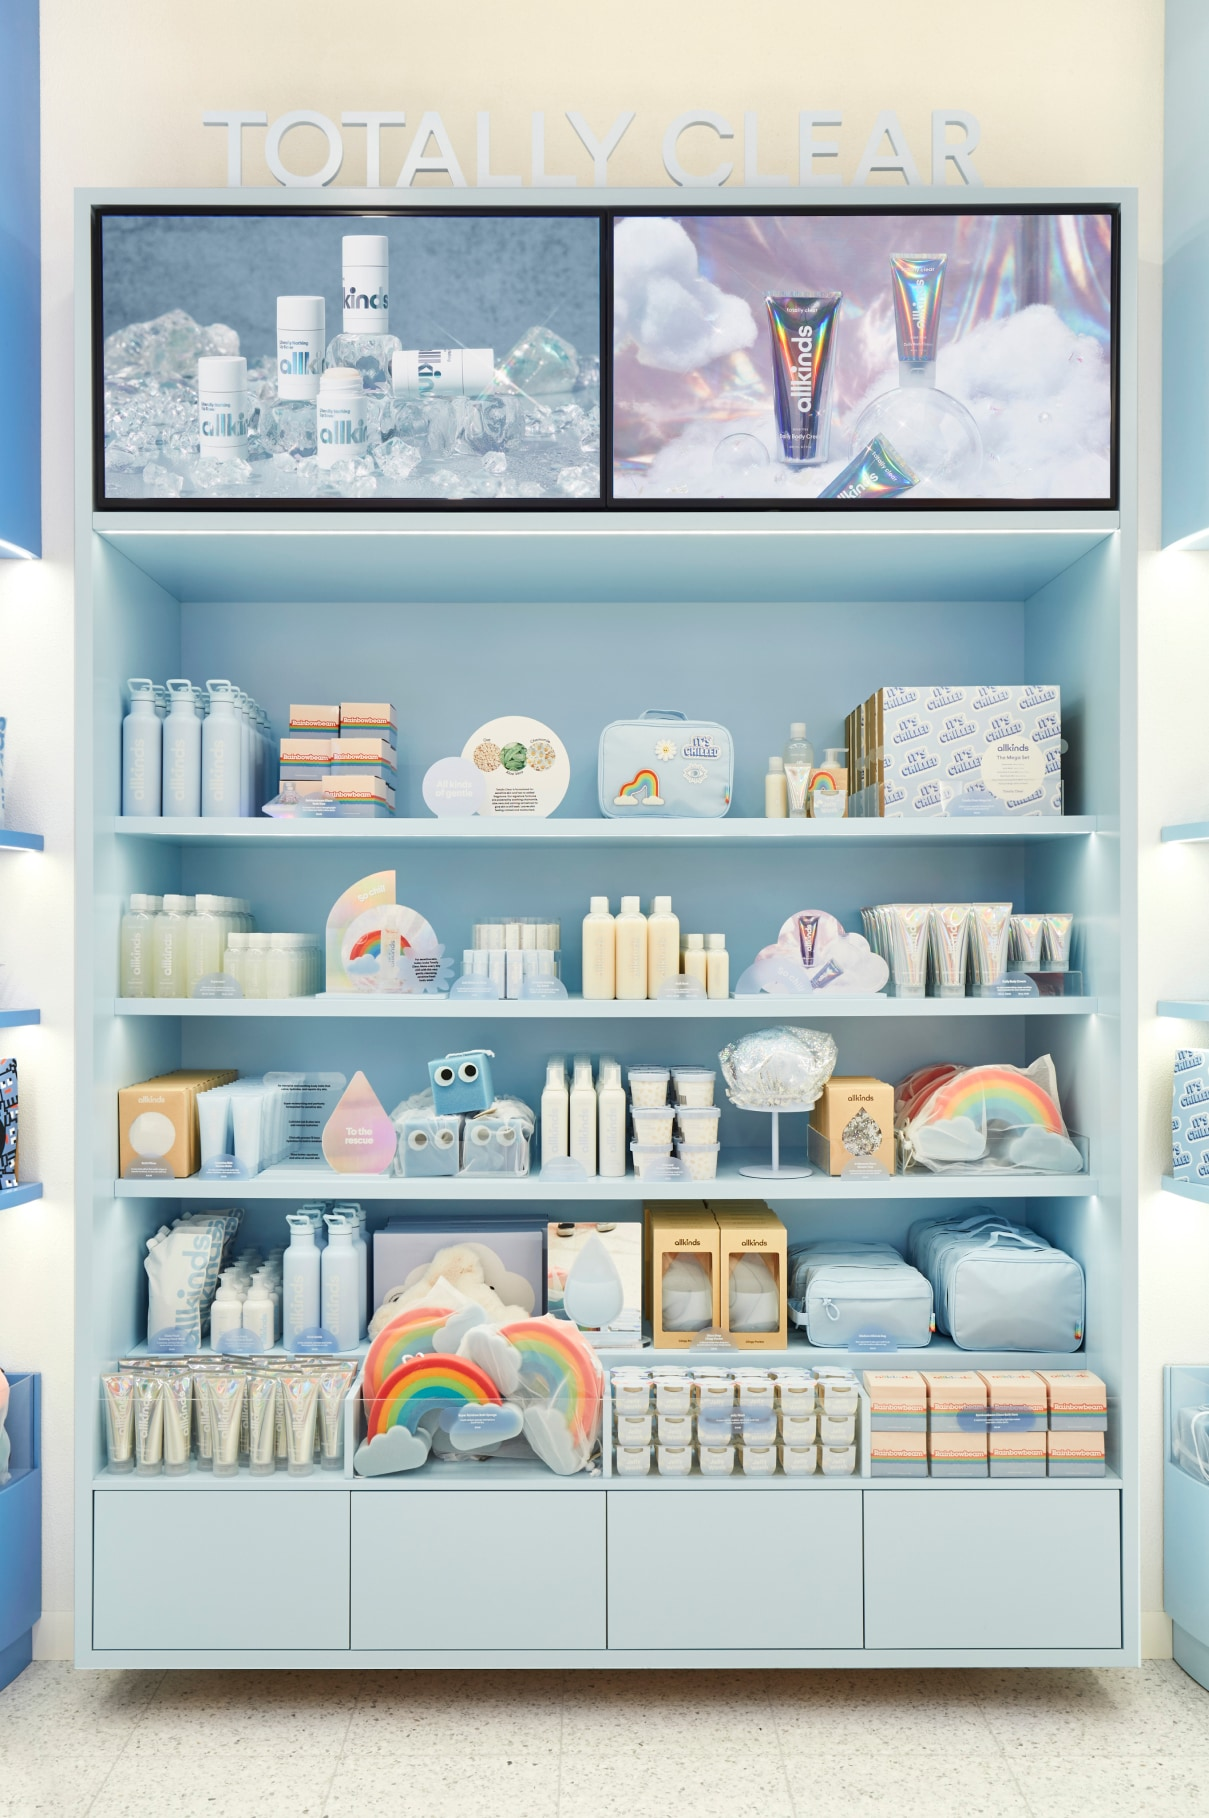 Allkinds Totally Clear world display shelves